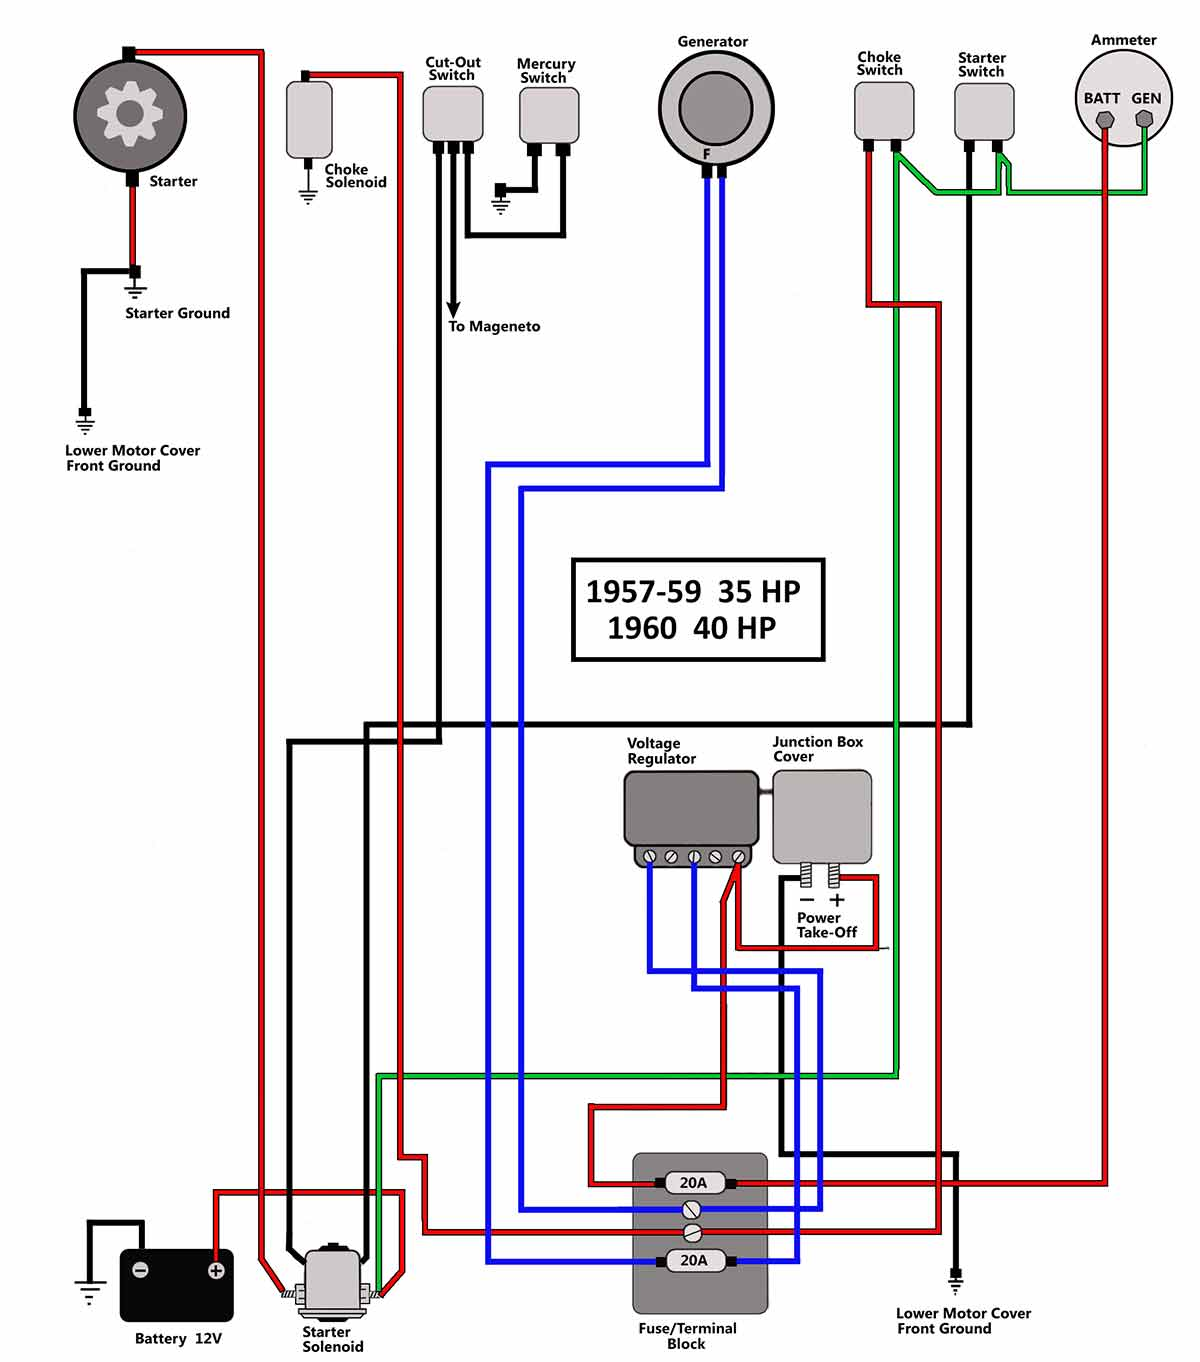 1957 60_35 40 help with wiring ignition and connecting battery to 1973 40hp mariner outboard motor wiring diagram at fashall.co